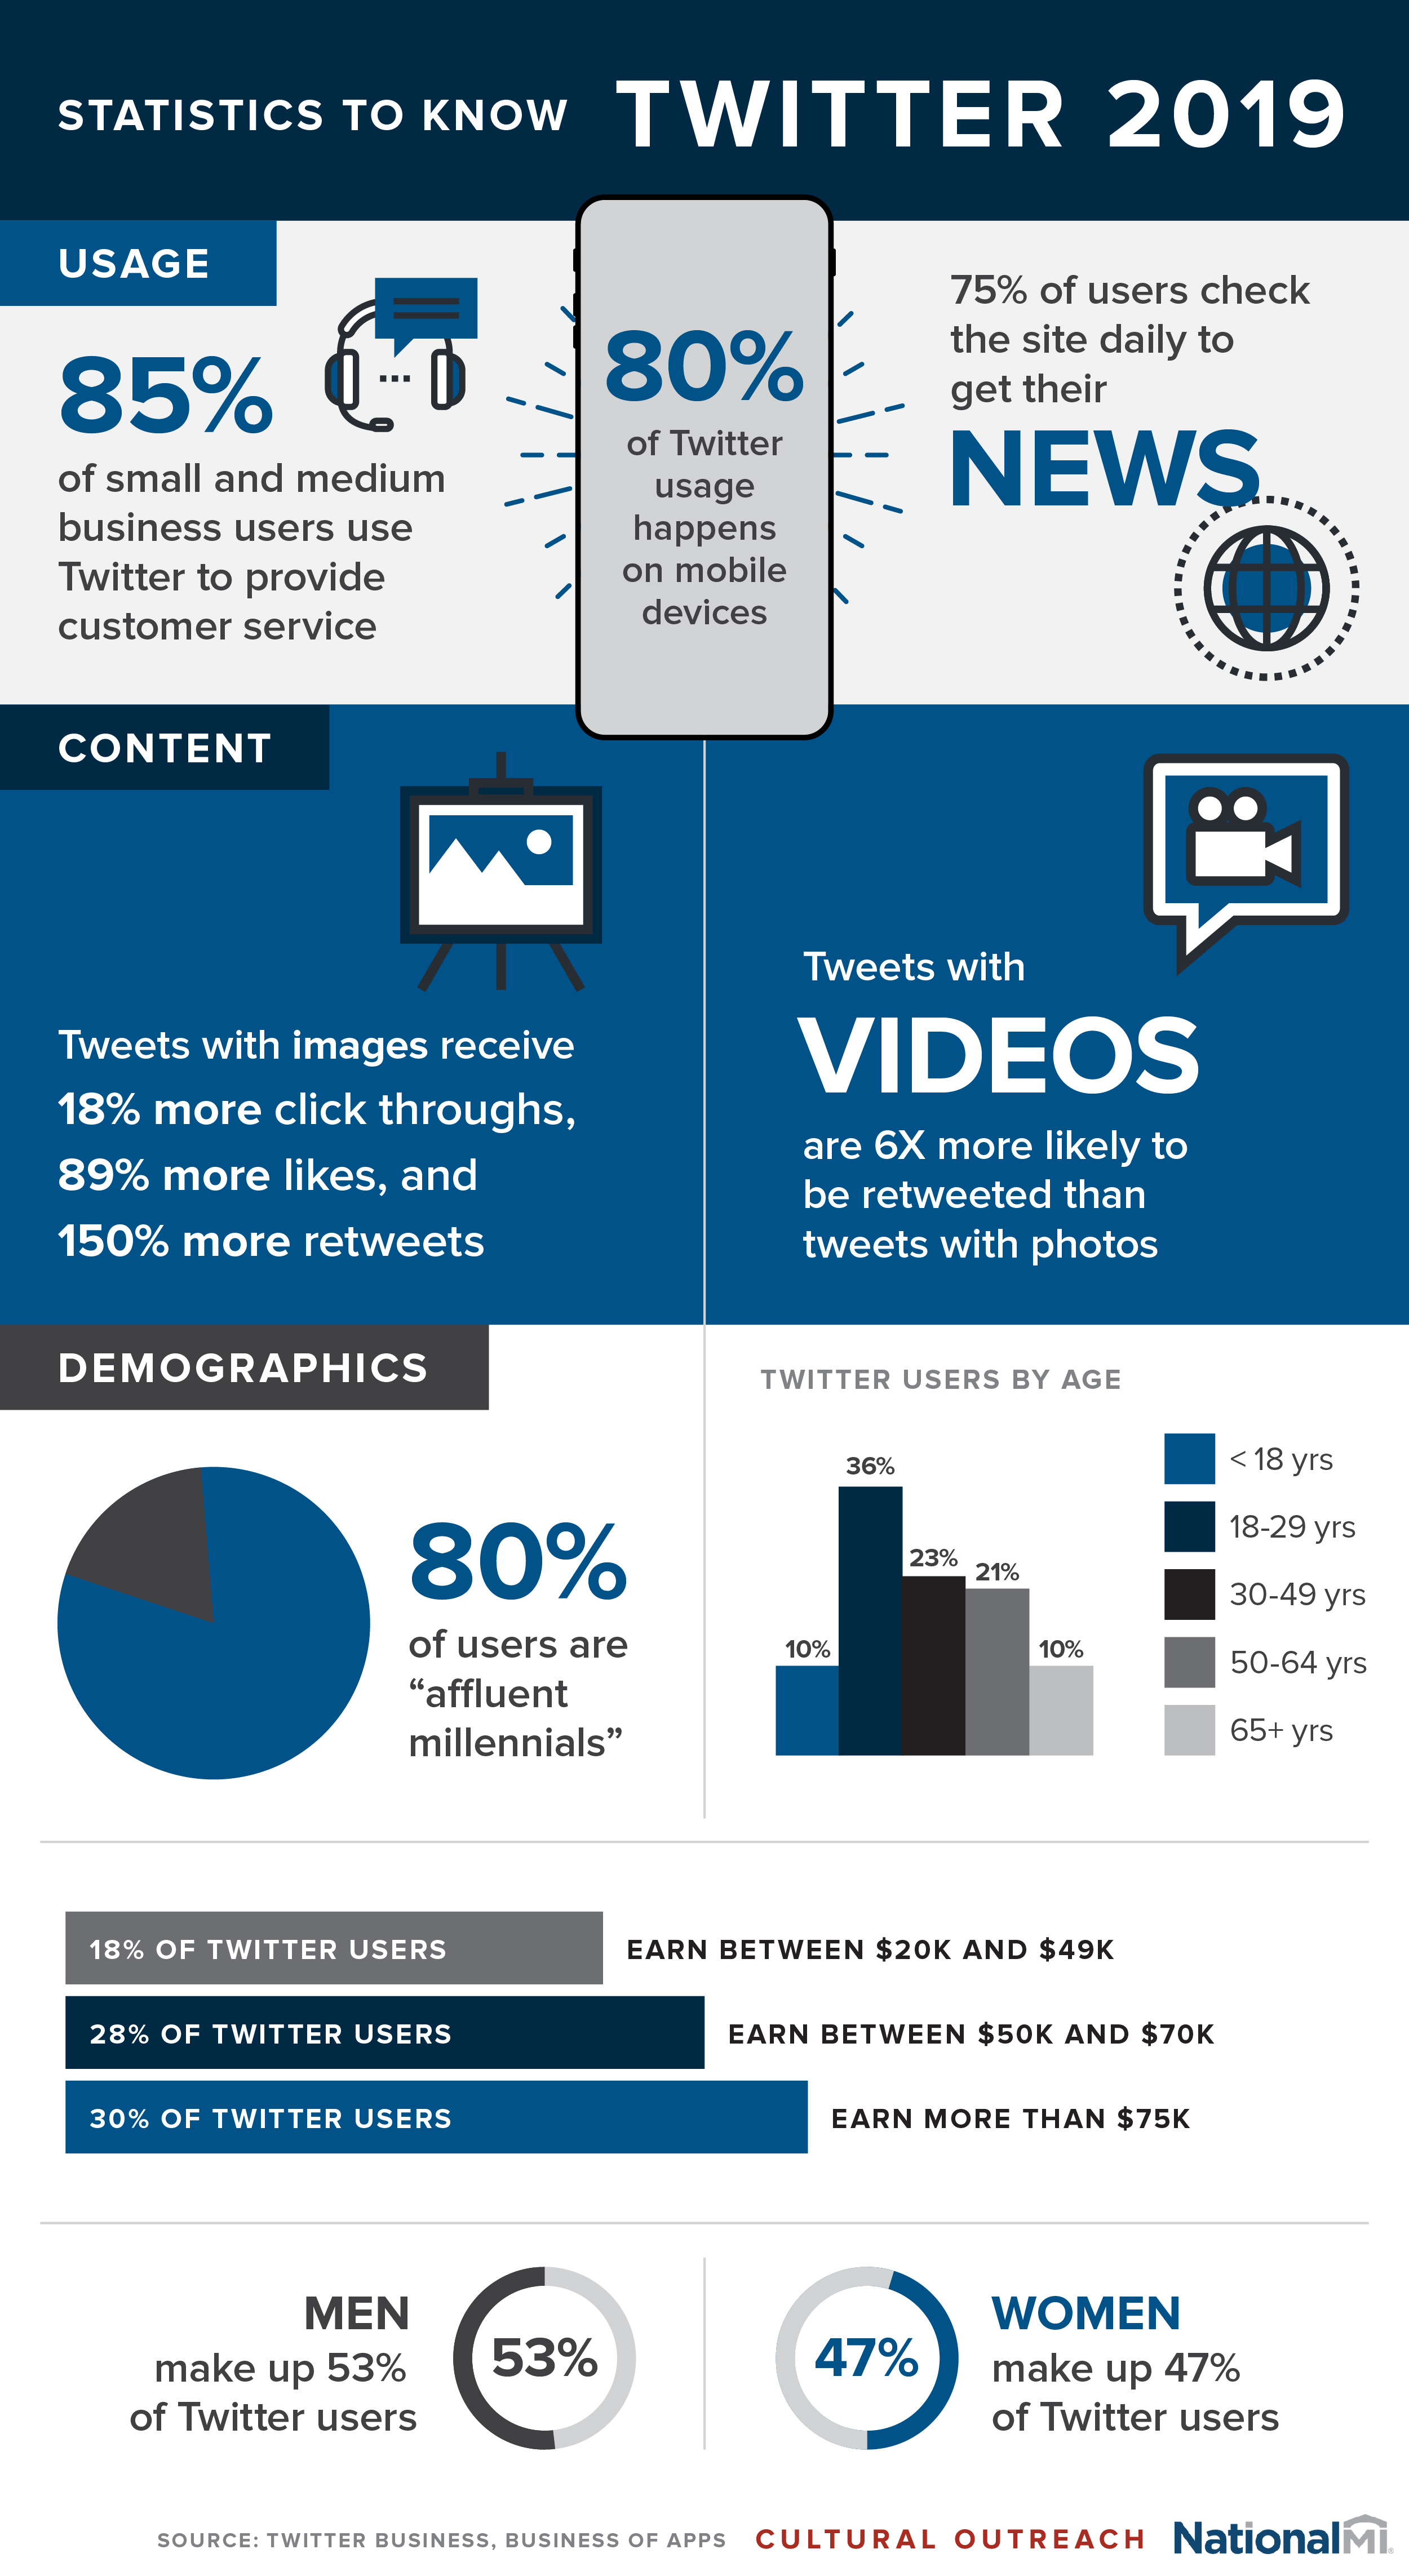 Twitter 2019 Statistics To Know Shareable Infographic M3